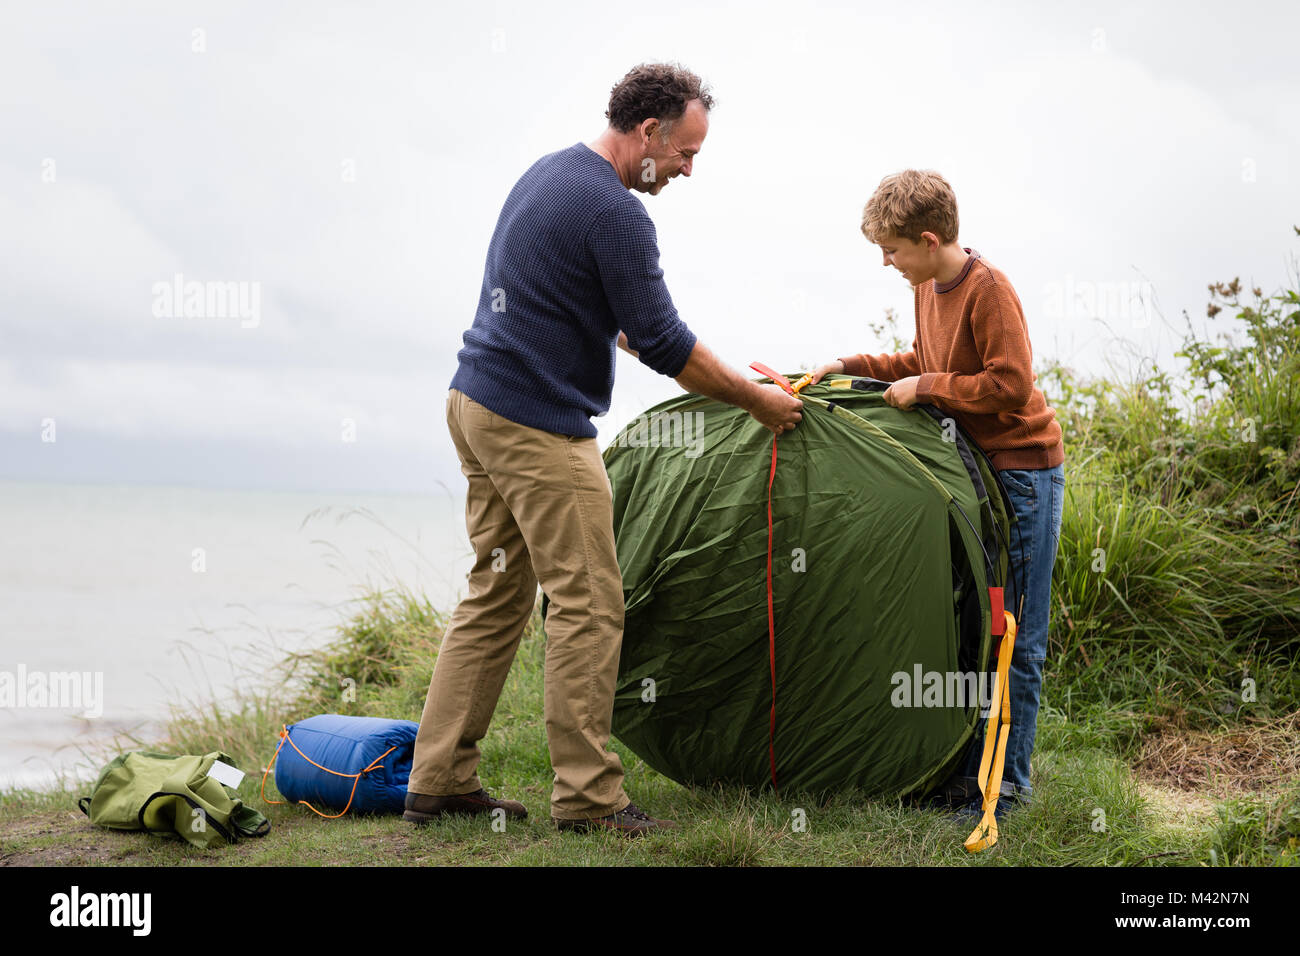 Father and Son putting up a tent together - Stock Image